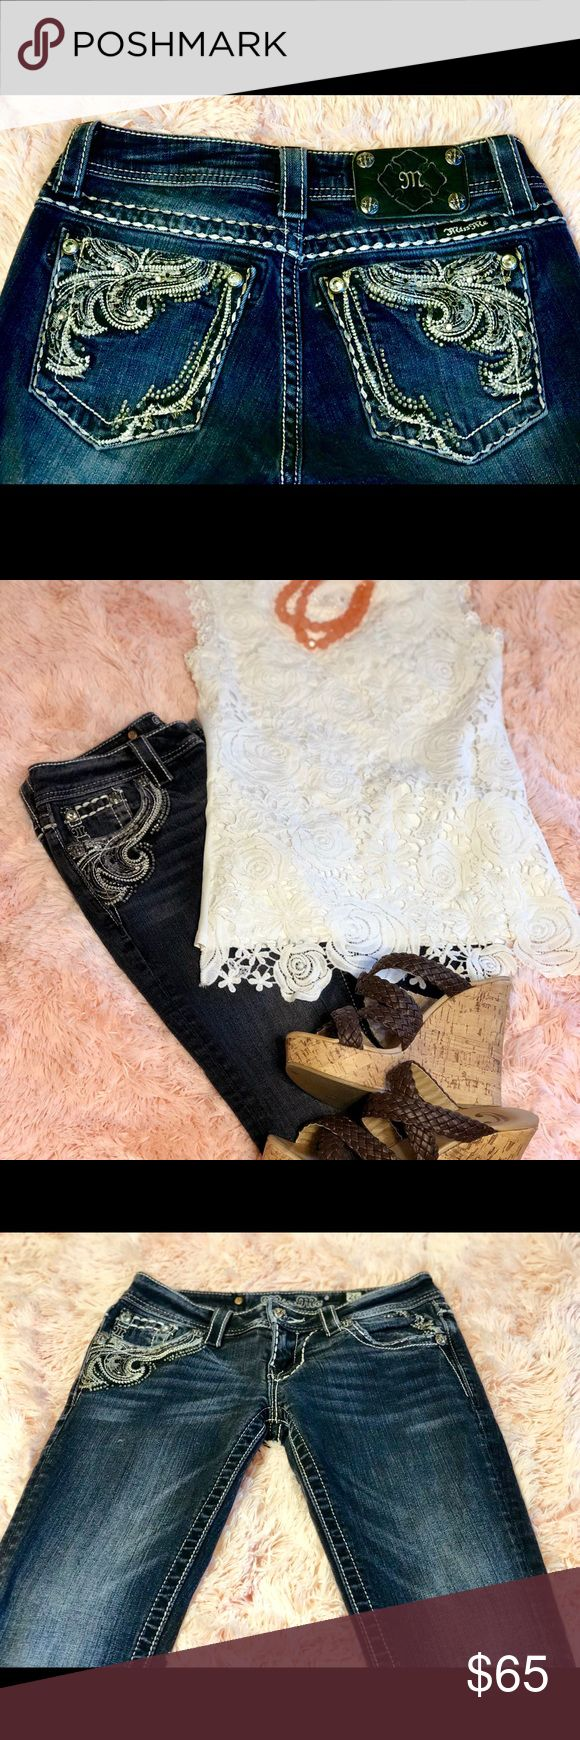 Miss Me Brand Skinny Jeans sz. 26 Excellent condition Miss Me brand skinny jeans in size 26. Embellishments and some mild distressing without being over the top. They have some stretch to them but definitely not yoga pants, they are true to size. Miss Me Jeans Skinny